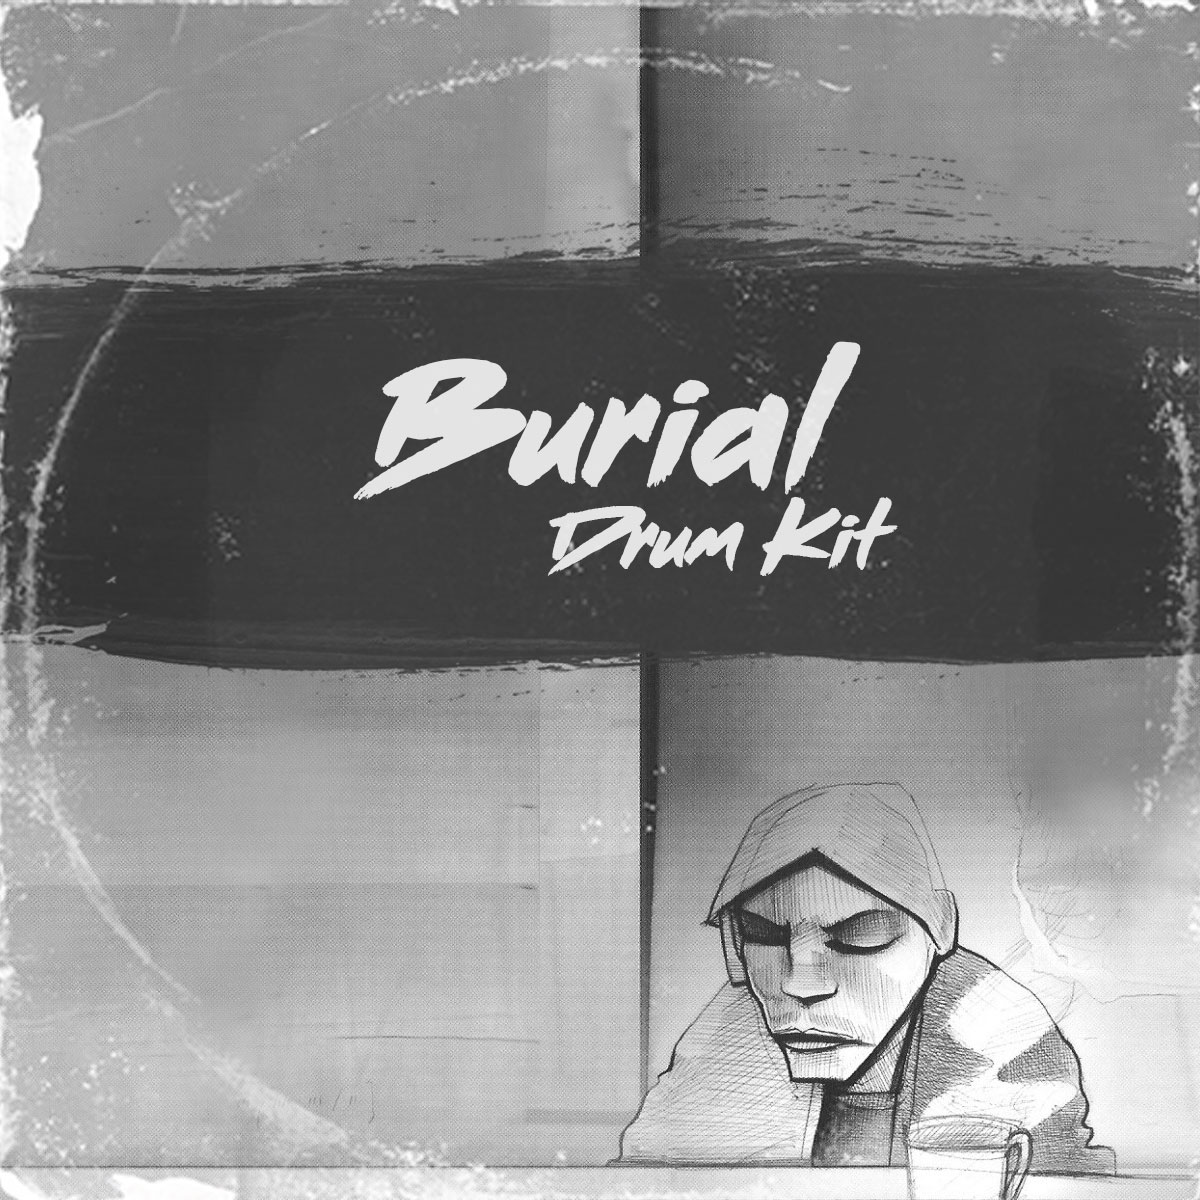 burial-drum-kit